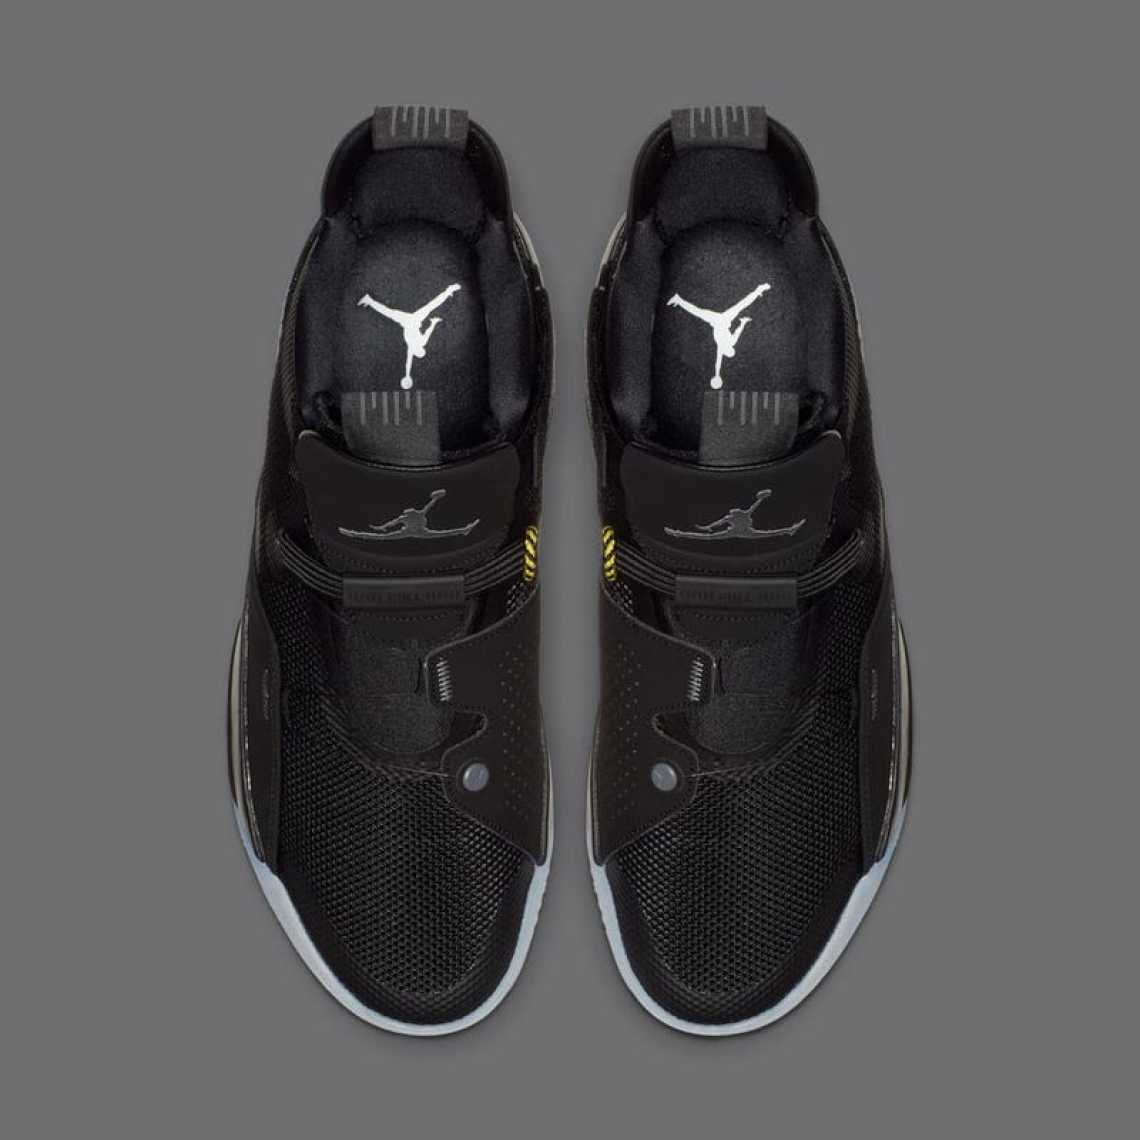 "70a449f50ca6a Air Jordan 33 ""Utility Blackout"" ."